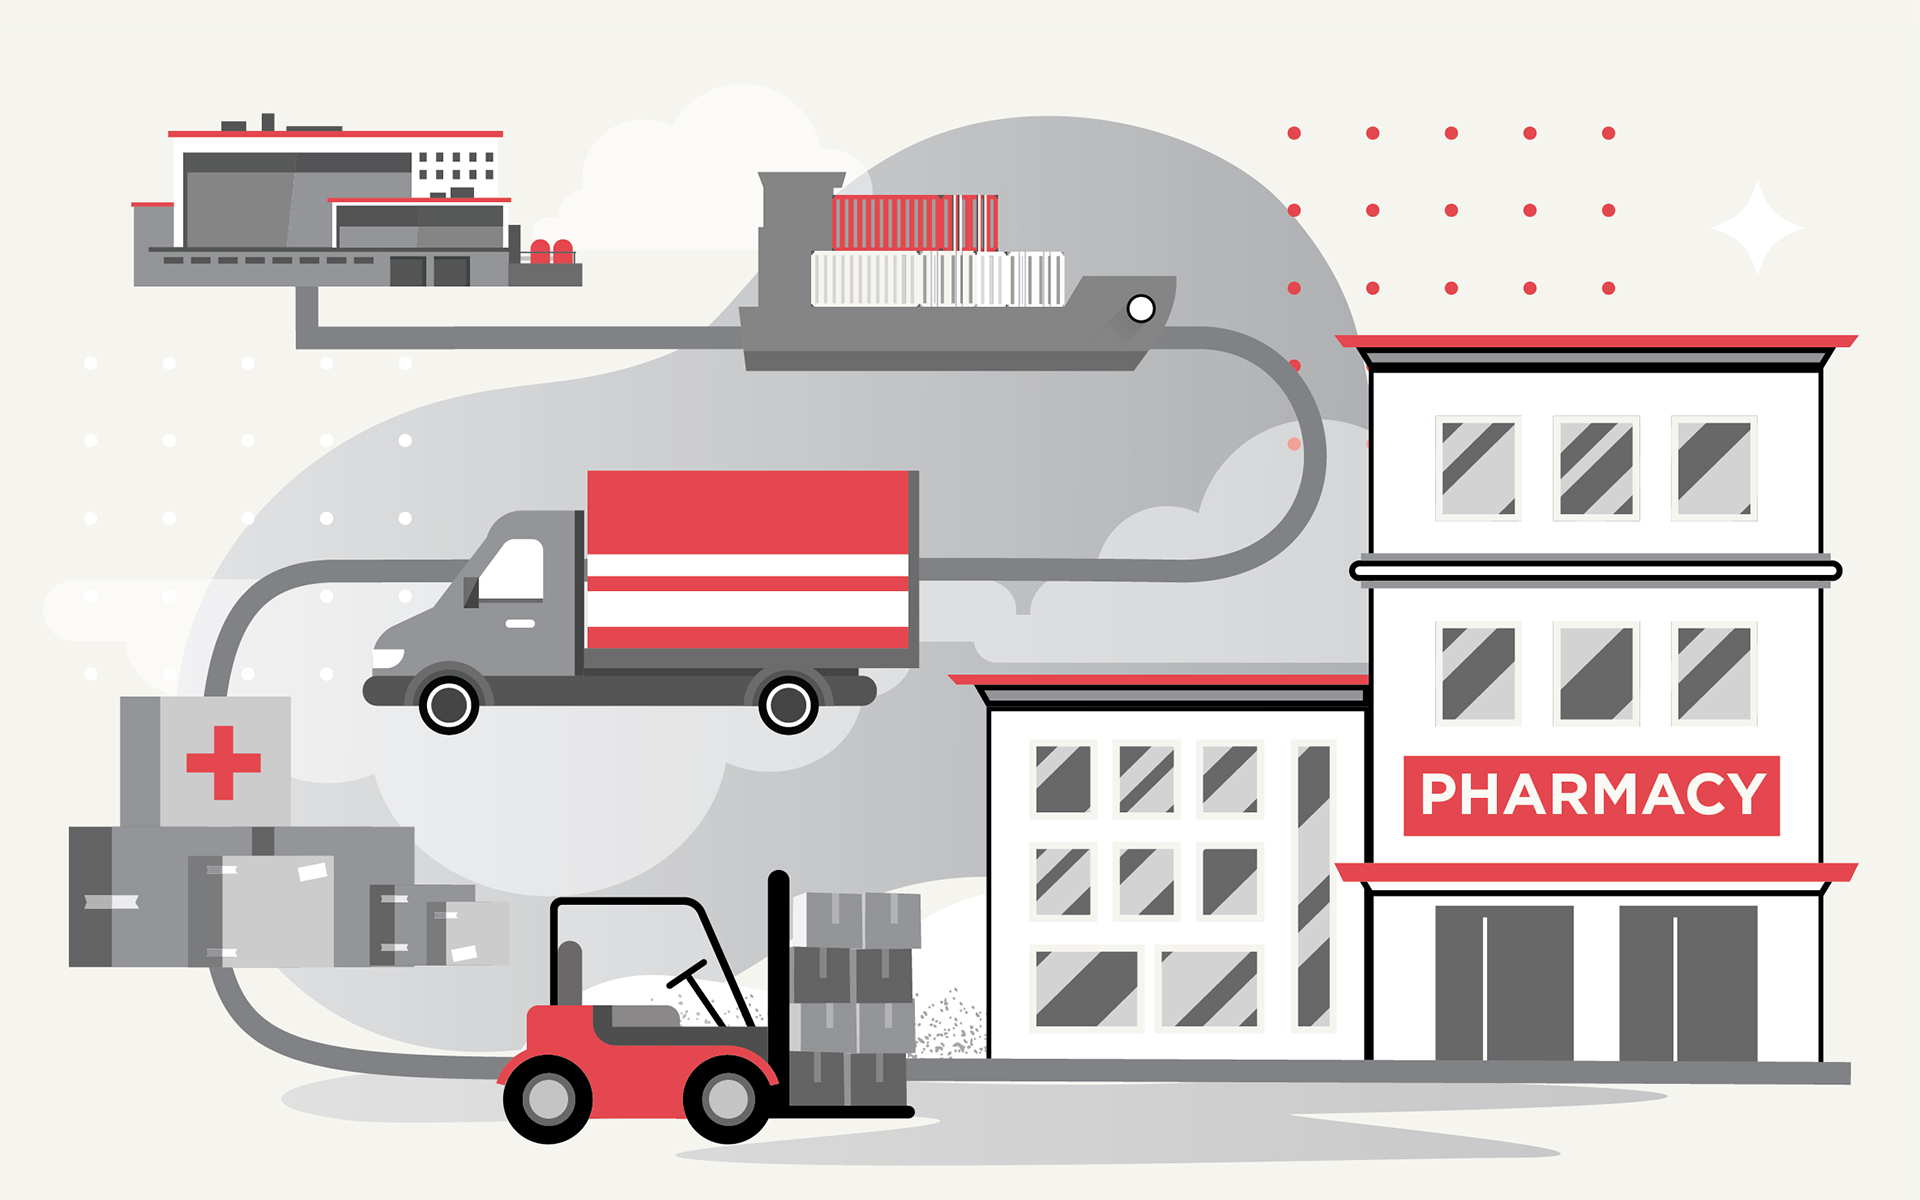 An illustration showing a ship, a truck, and a forklift in a line to a pharmacy building